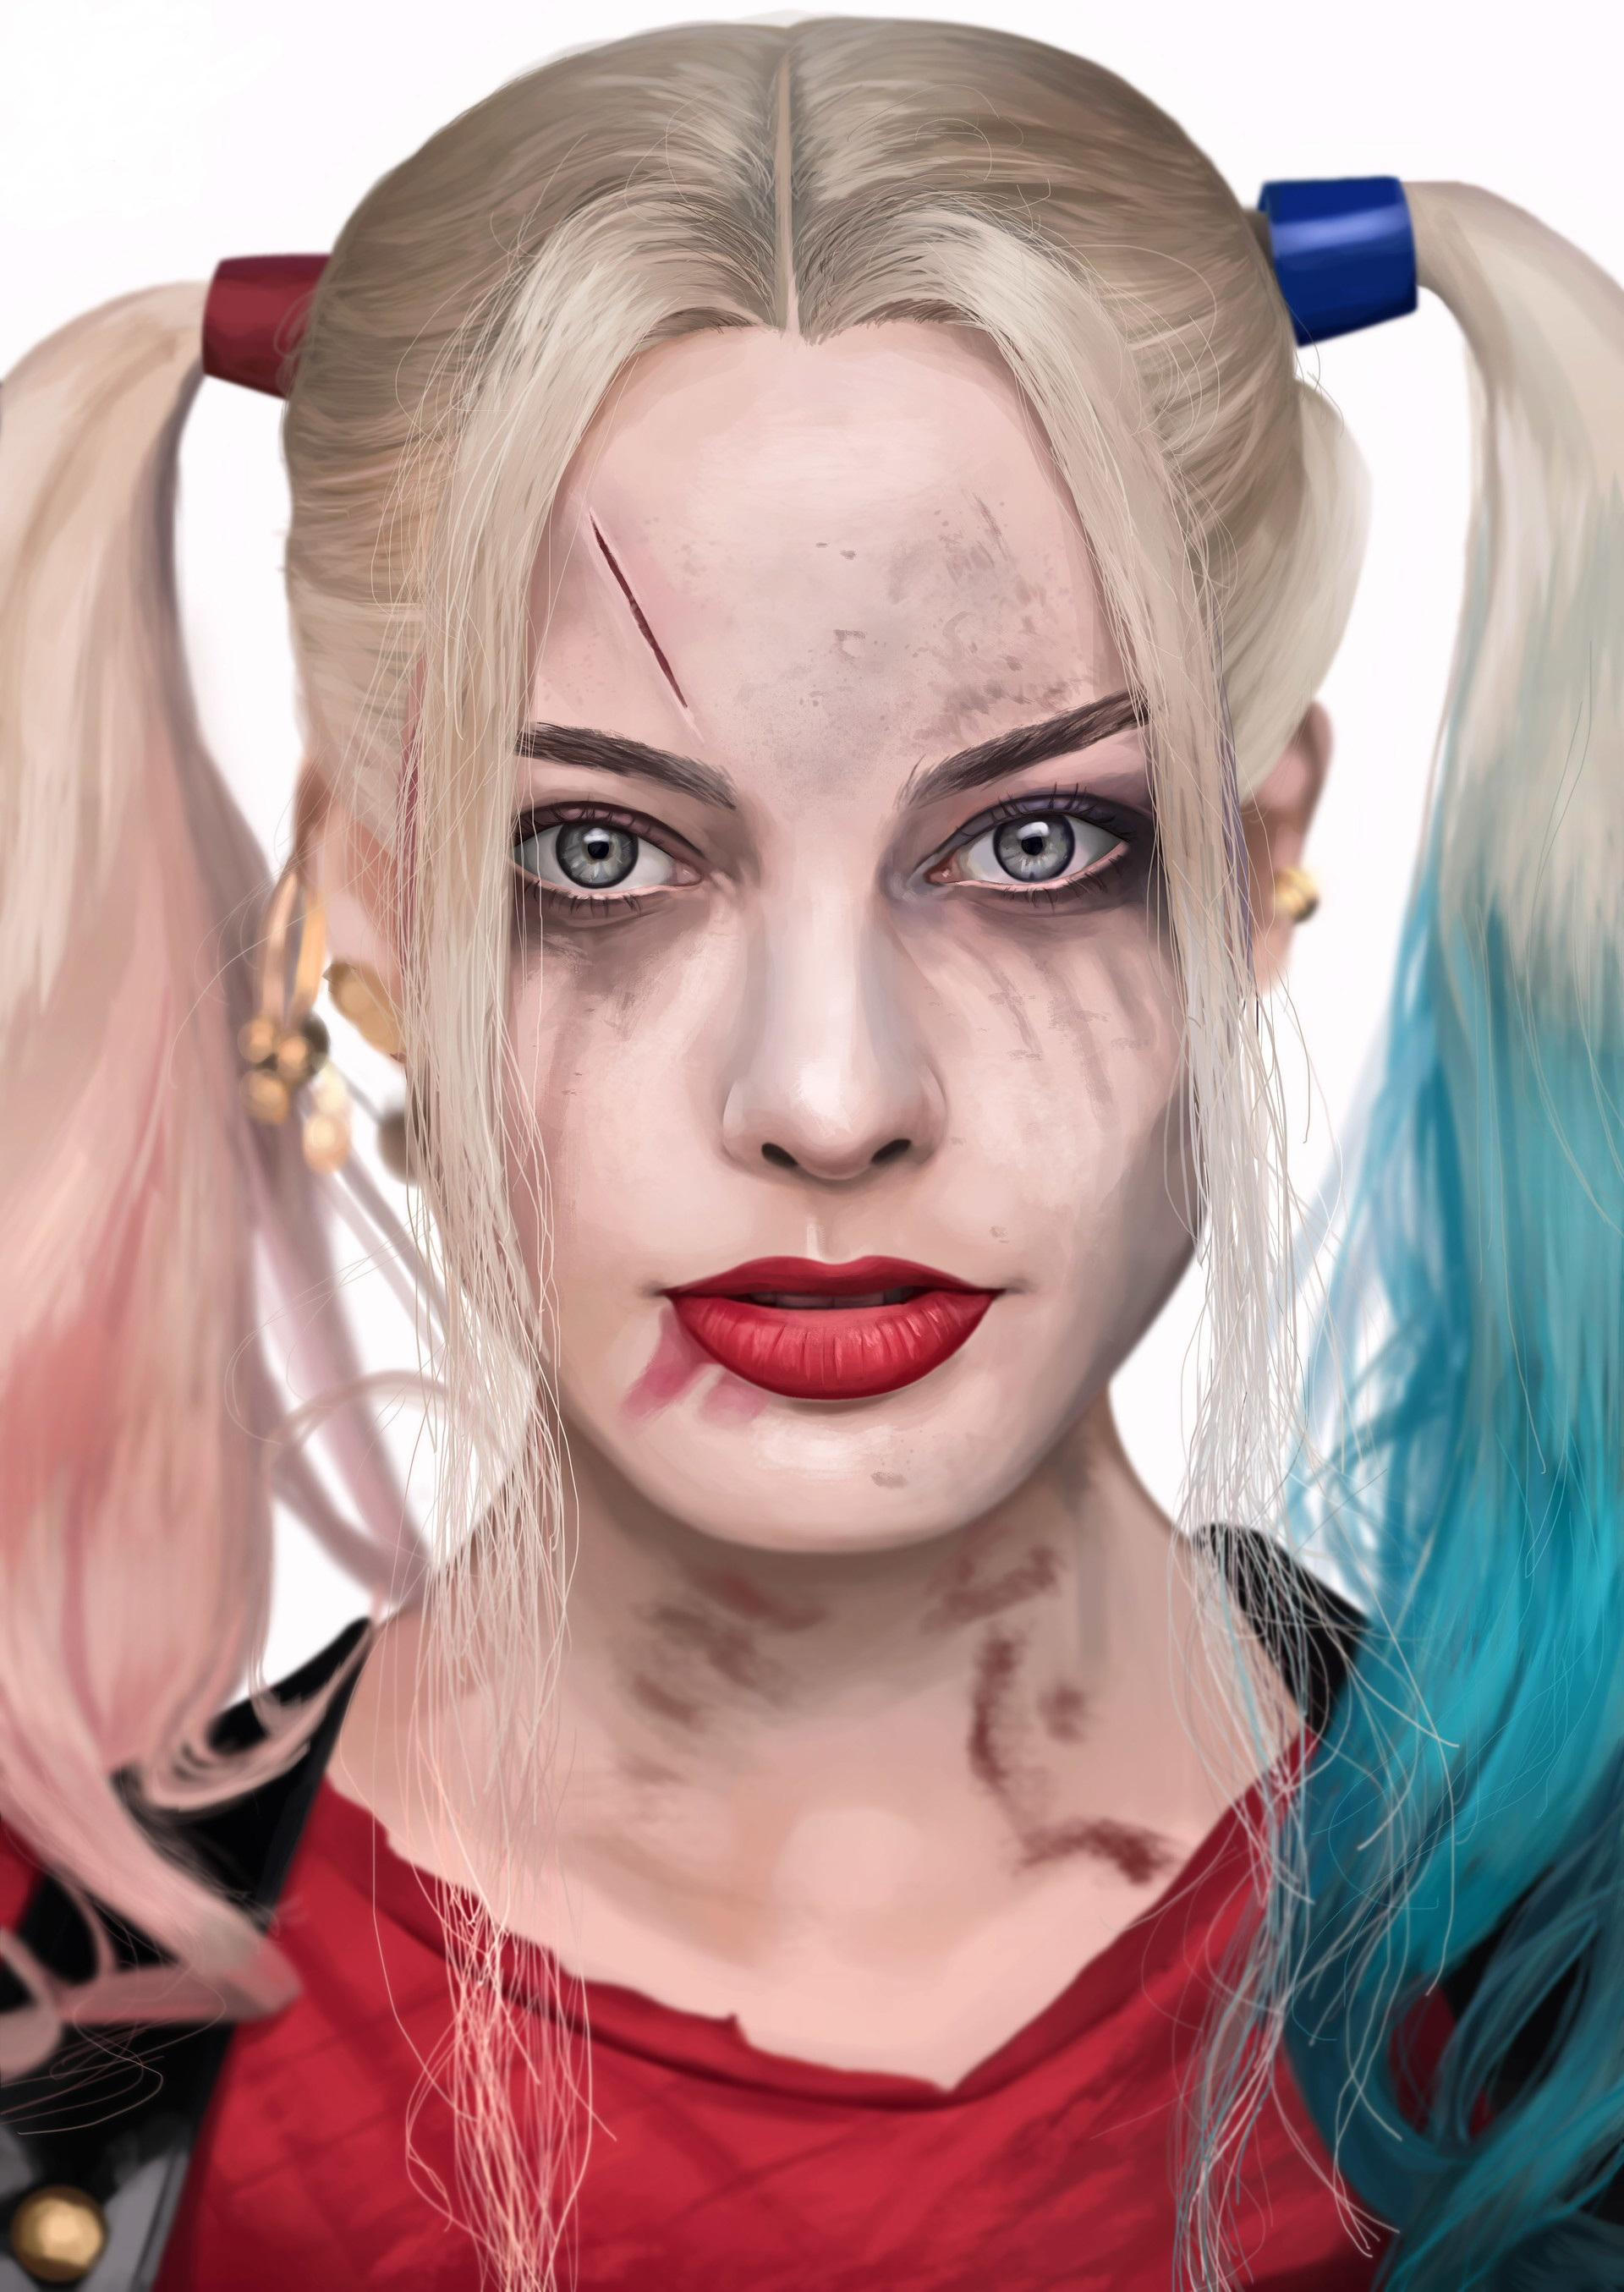 Wallpaper Suicide Squad 2016 Margot Robbie Blonde Girl 1920x2710